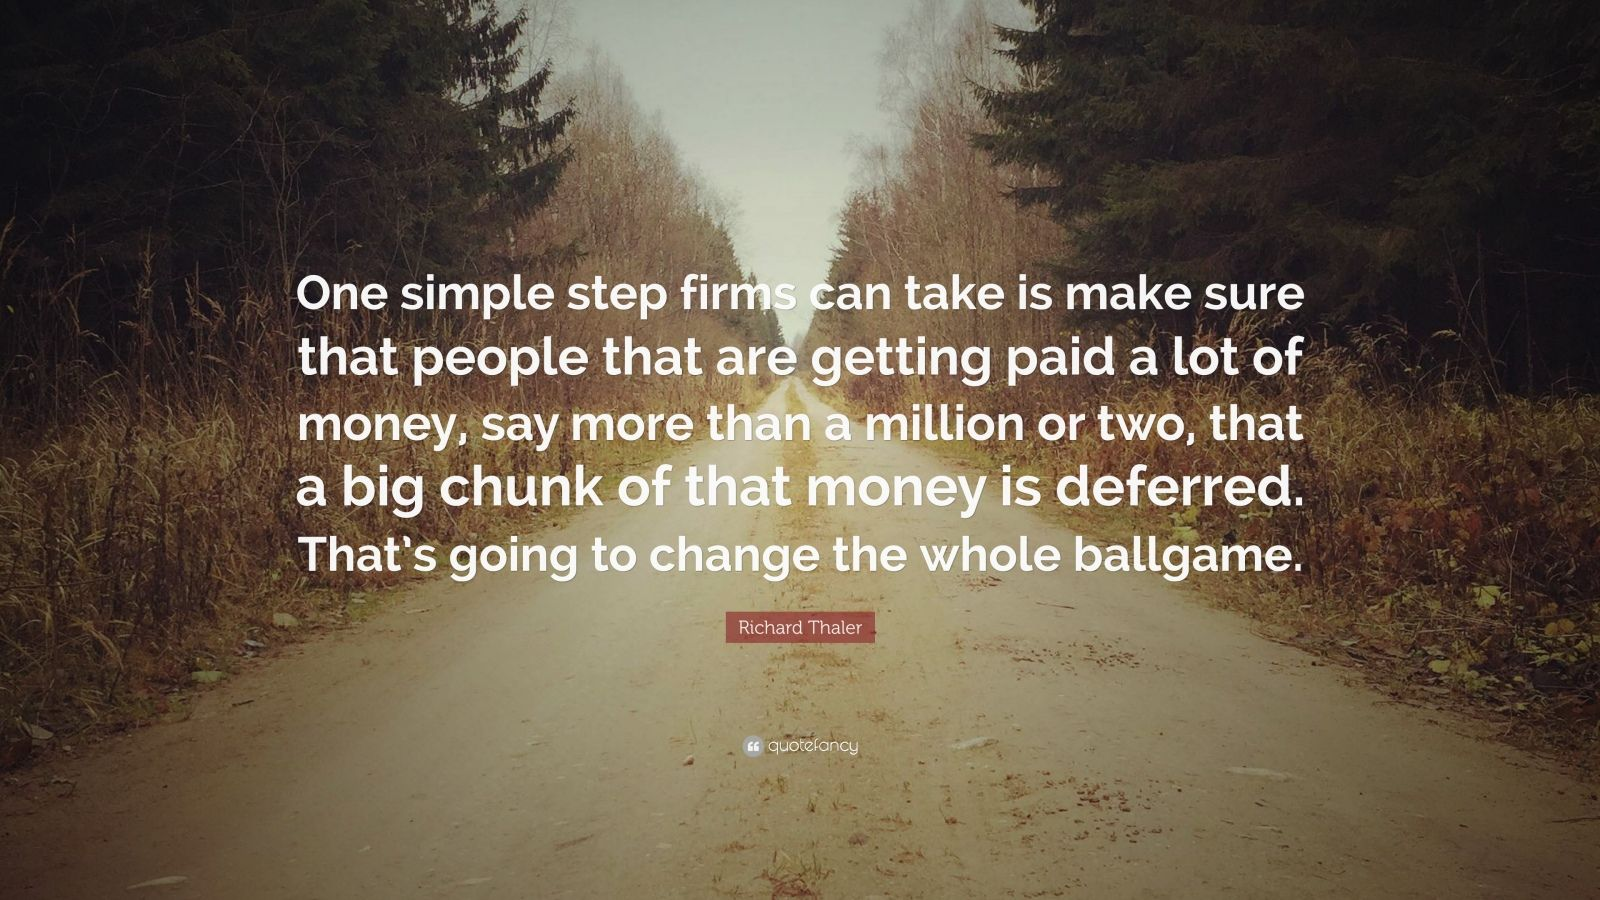 """Richard Thaler Quote: """"One simple step firms can take is make sure that people that are getting paid a lot of money, say more than a million or two, that a big chunk of that money is deferred. That's going to change the whole ballgame."""""""